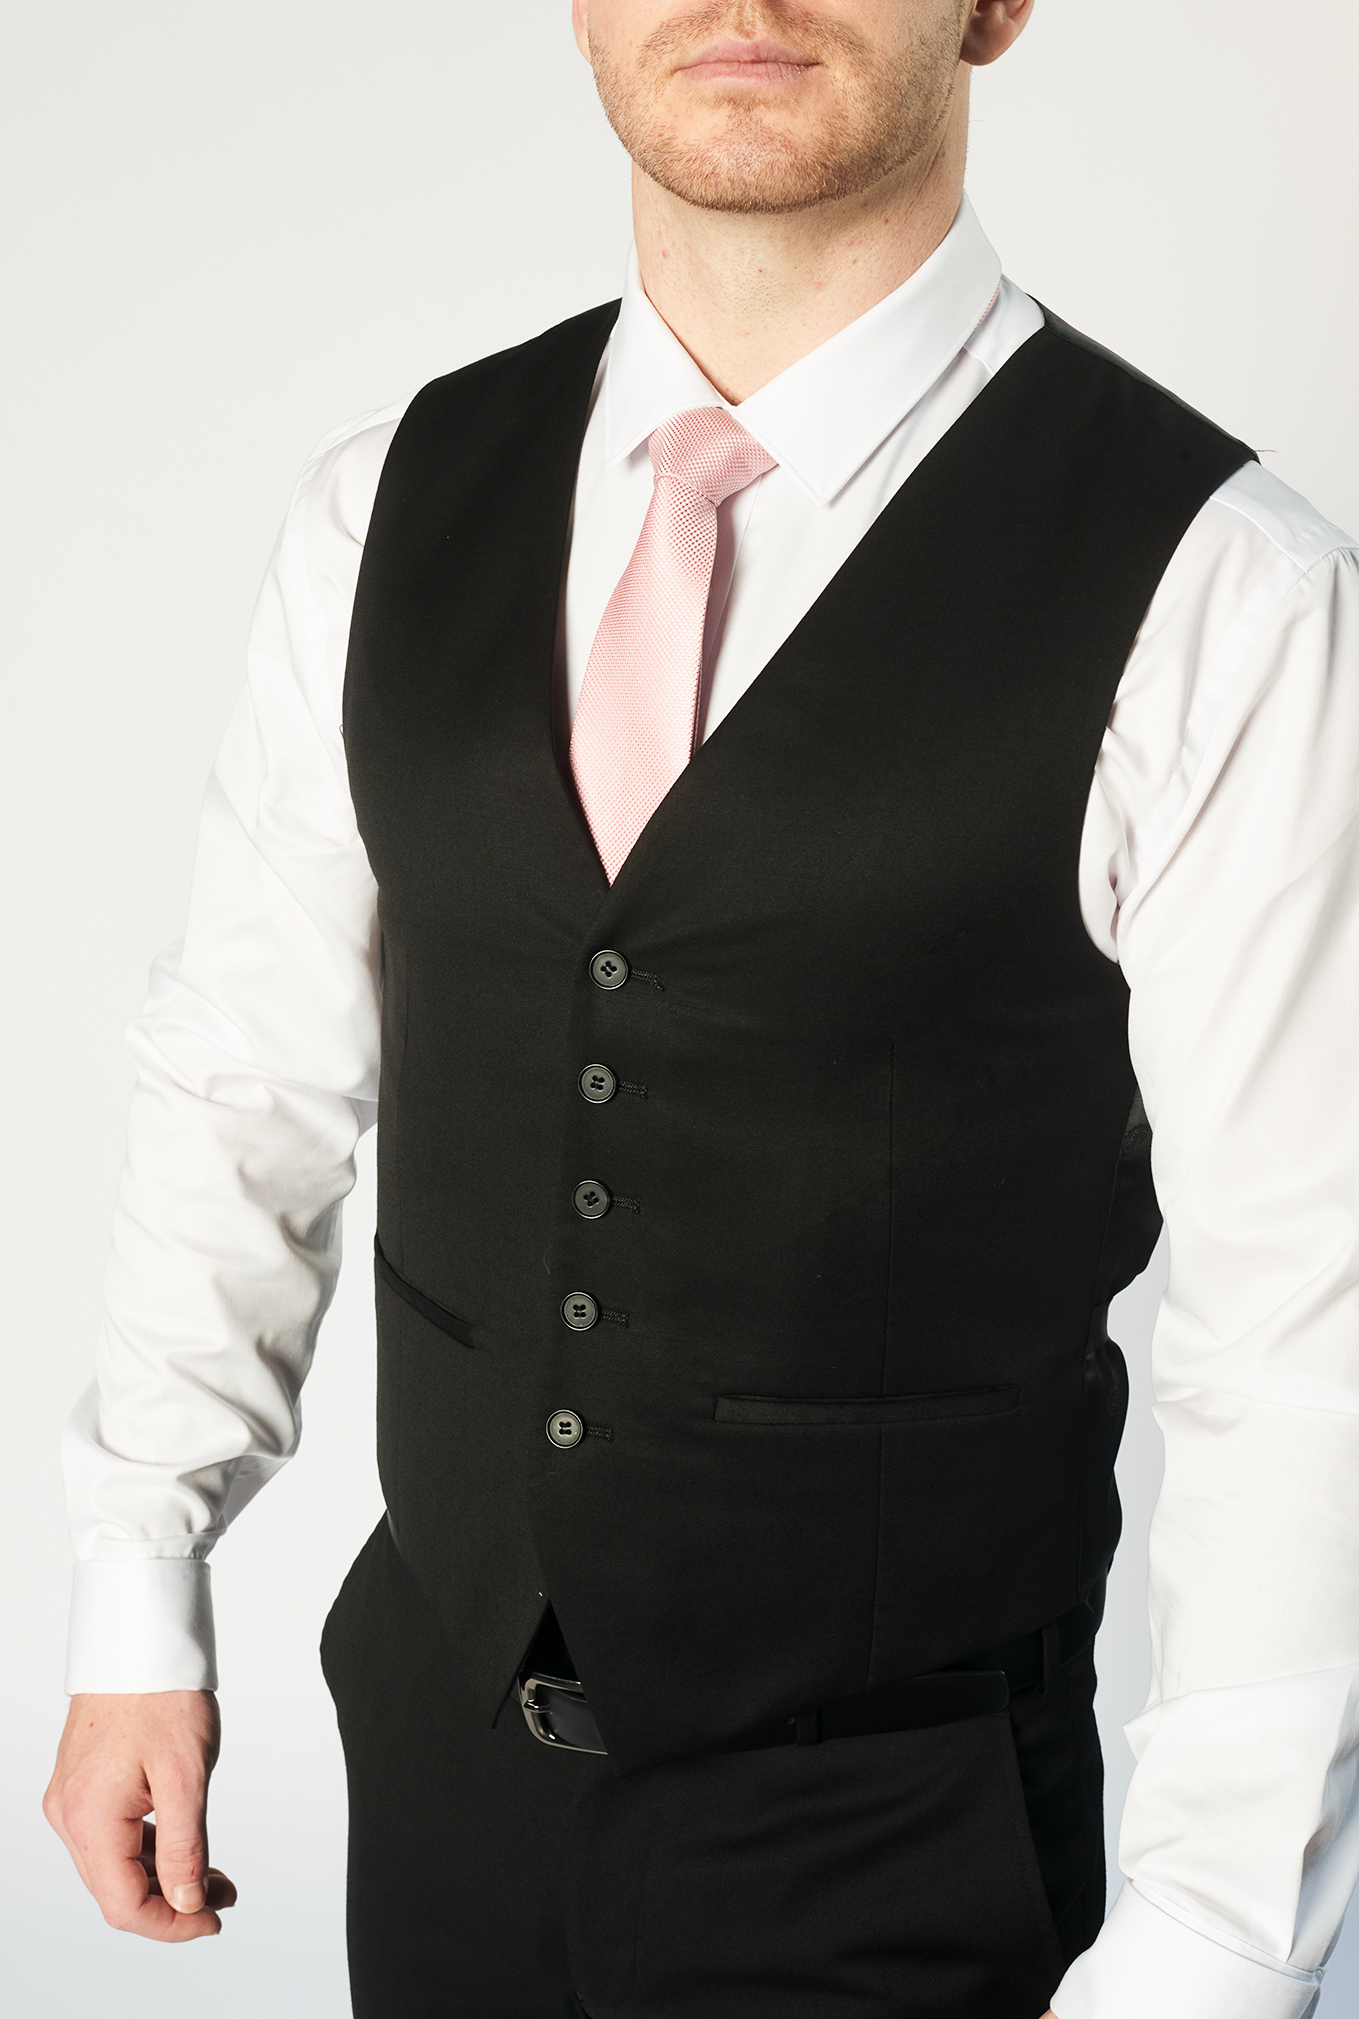 Close-up of the Cambridge with black waistcoat